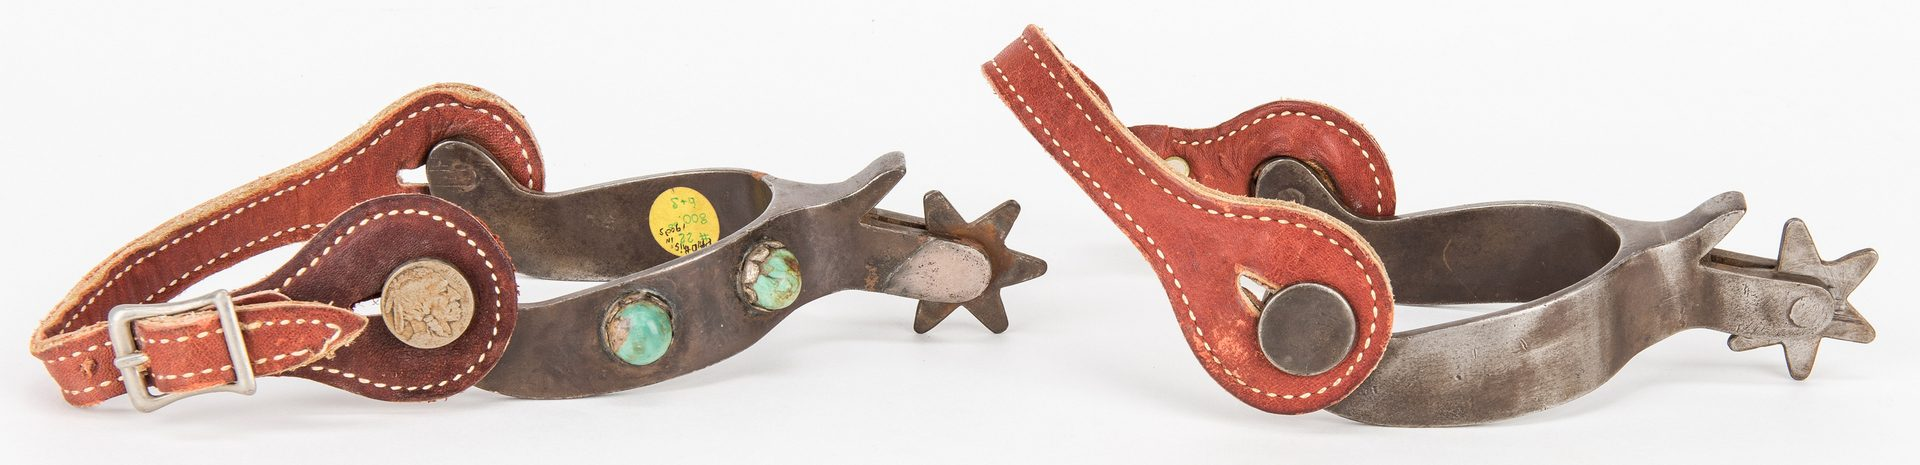 Lot 608: Pair Signed Oscar Crockett Spurs & Bit